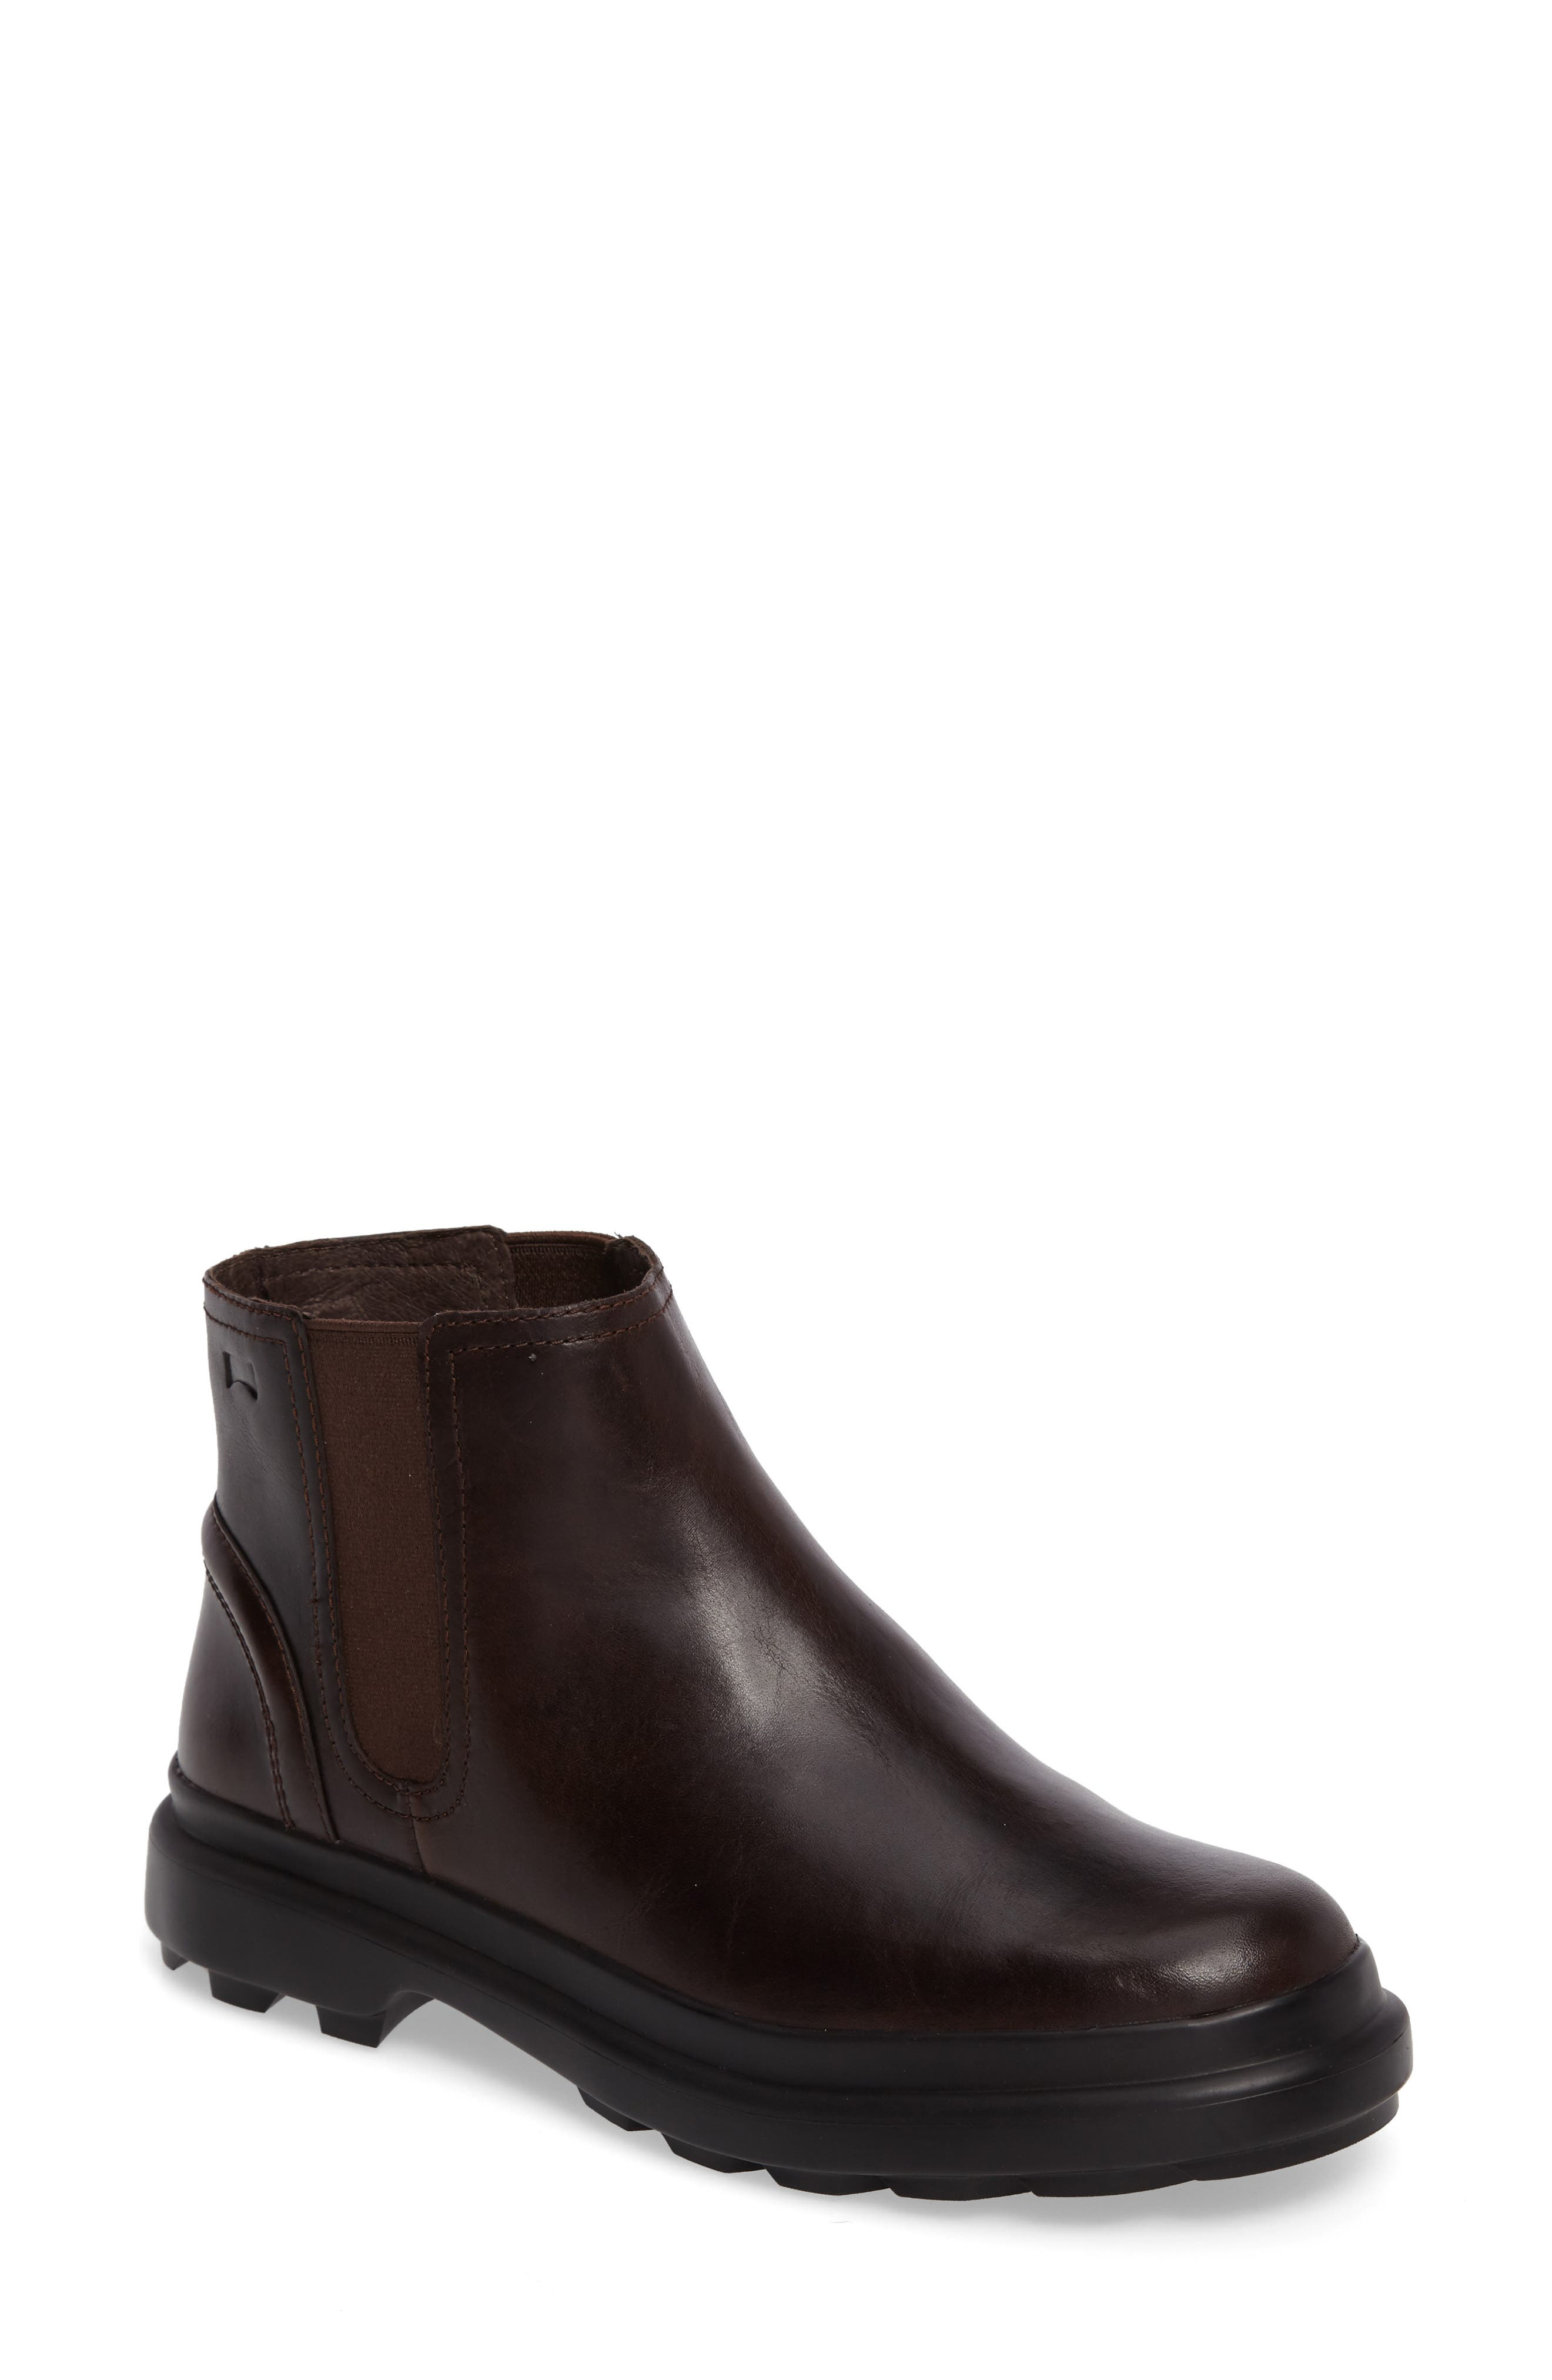 Turtle Lugged Chelsea Boot,                             Main thumbnail 1, color,                             Dark Brown Leather